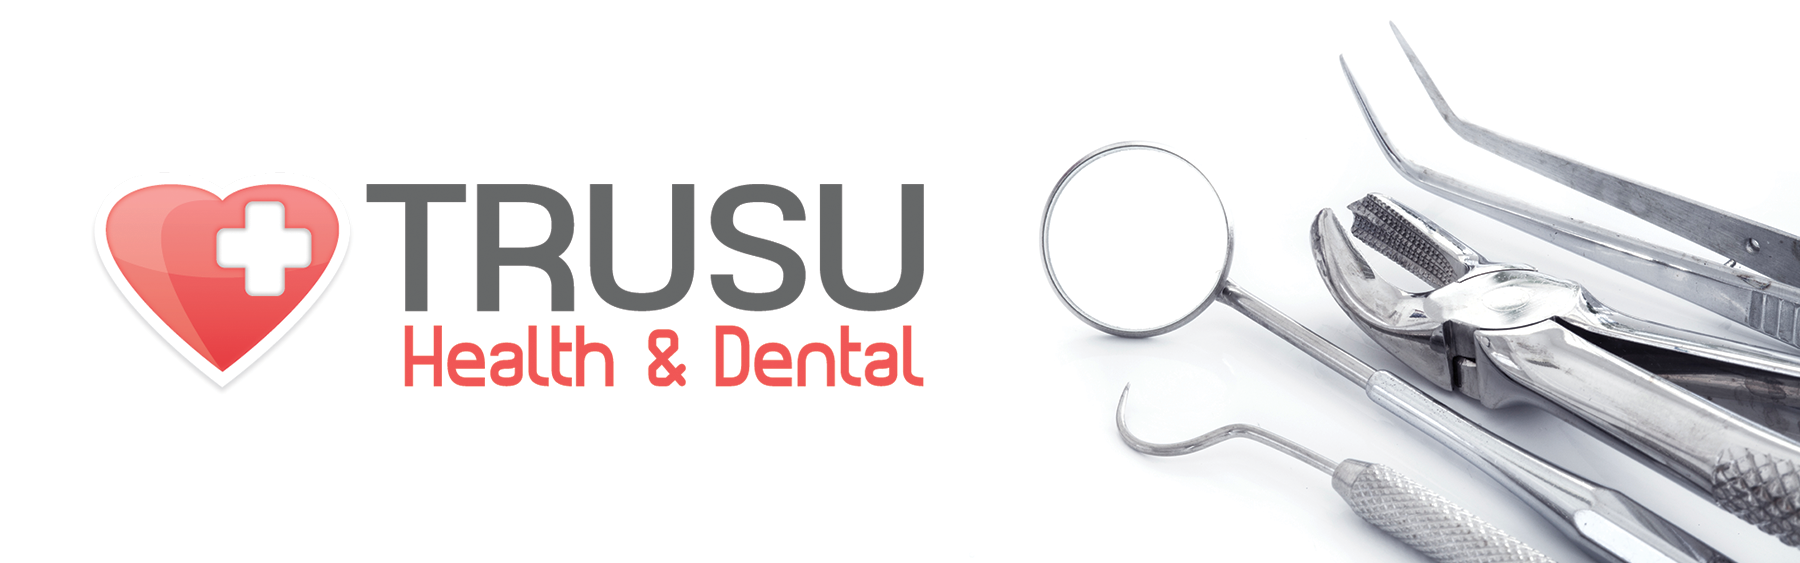 health and dental plan | trusu